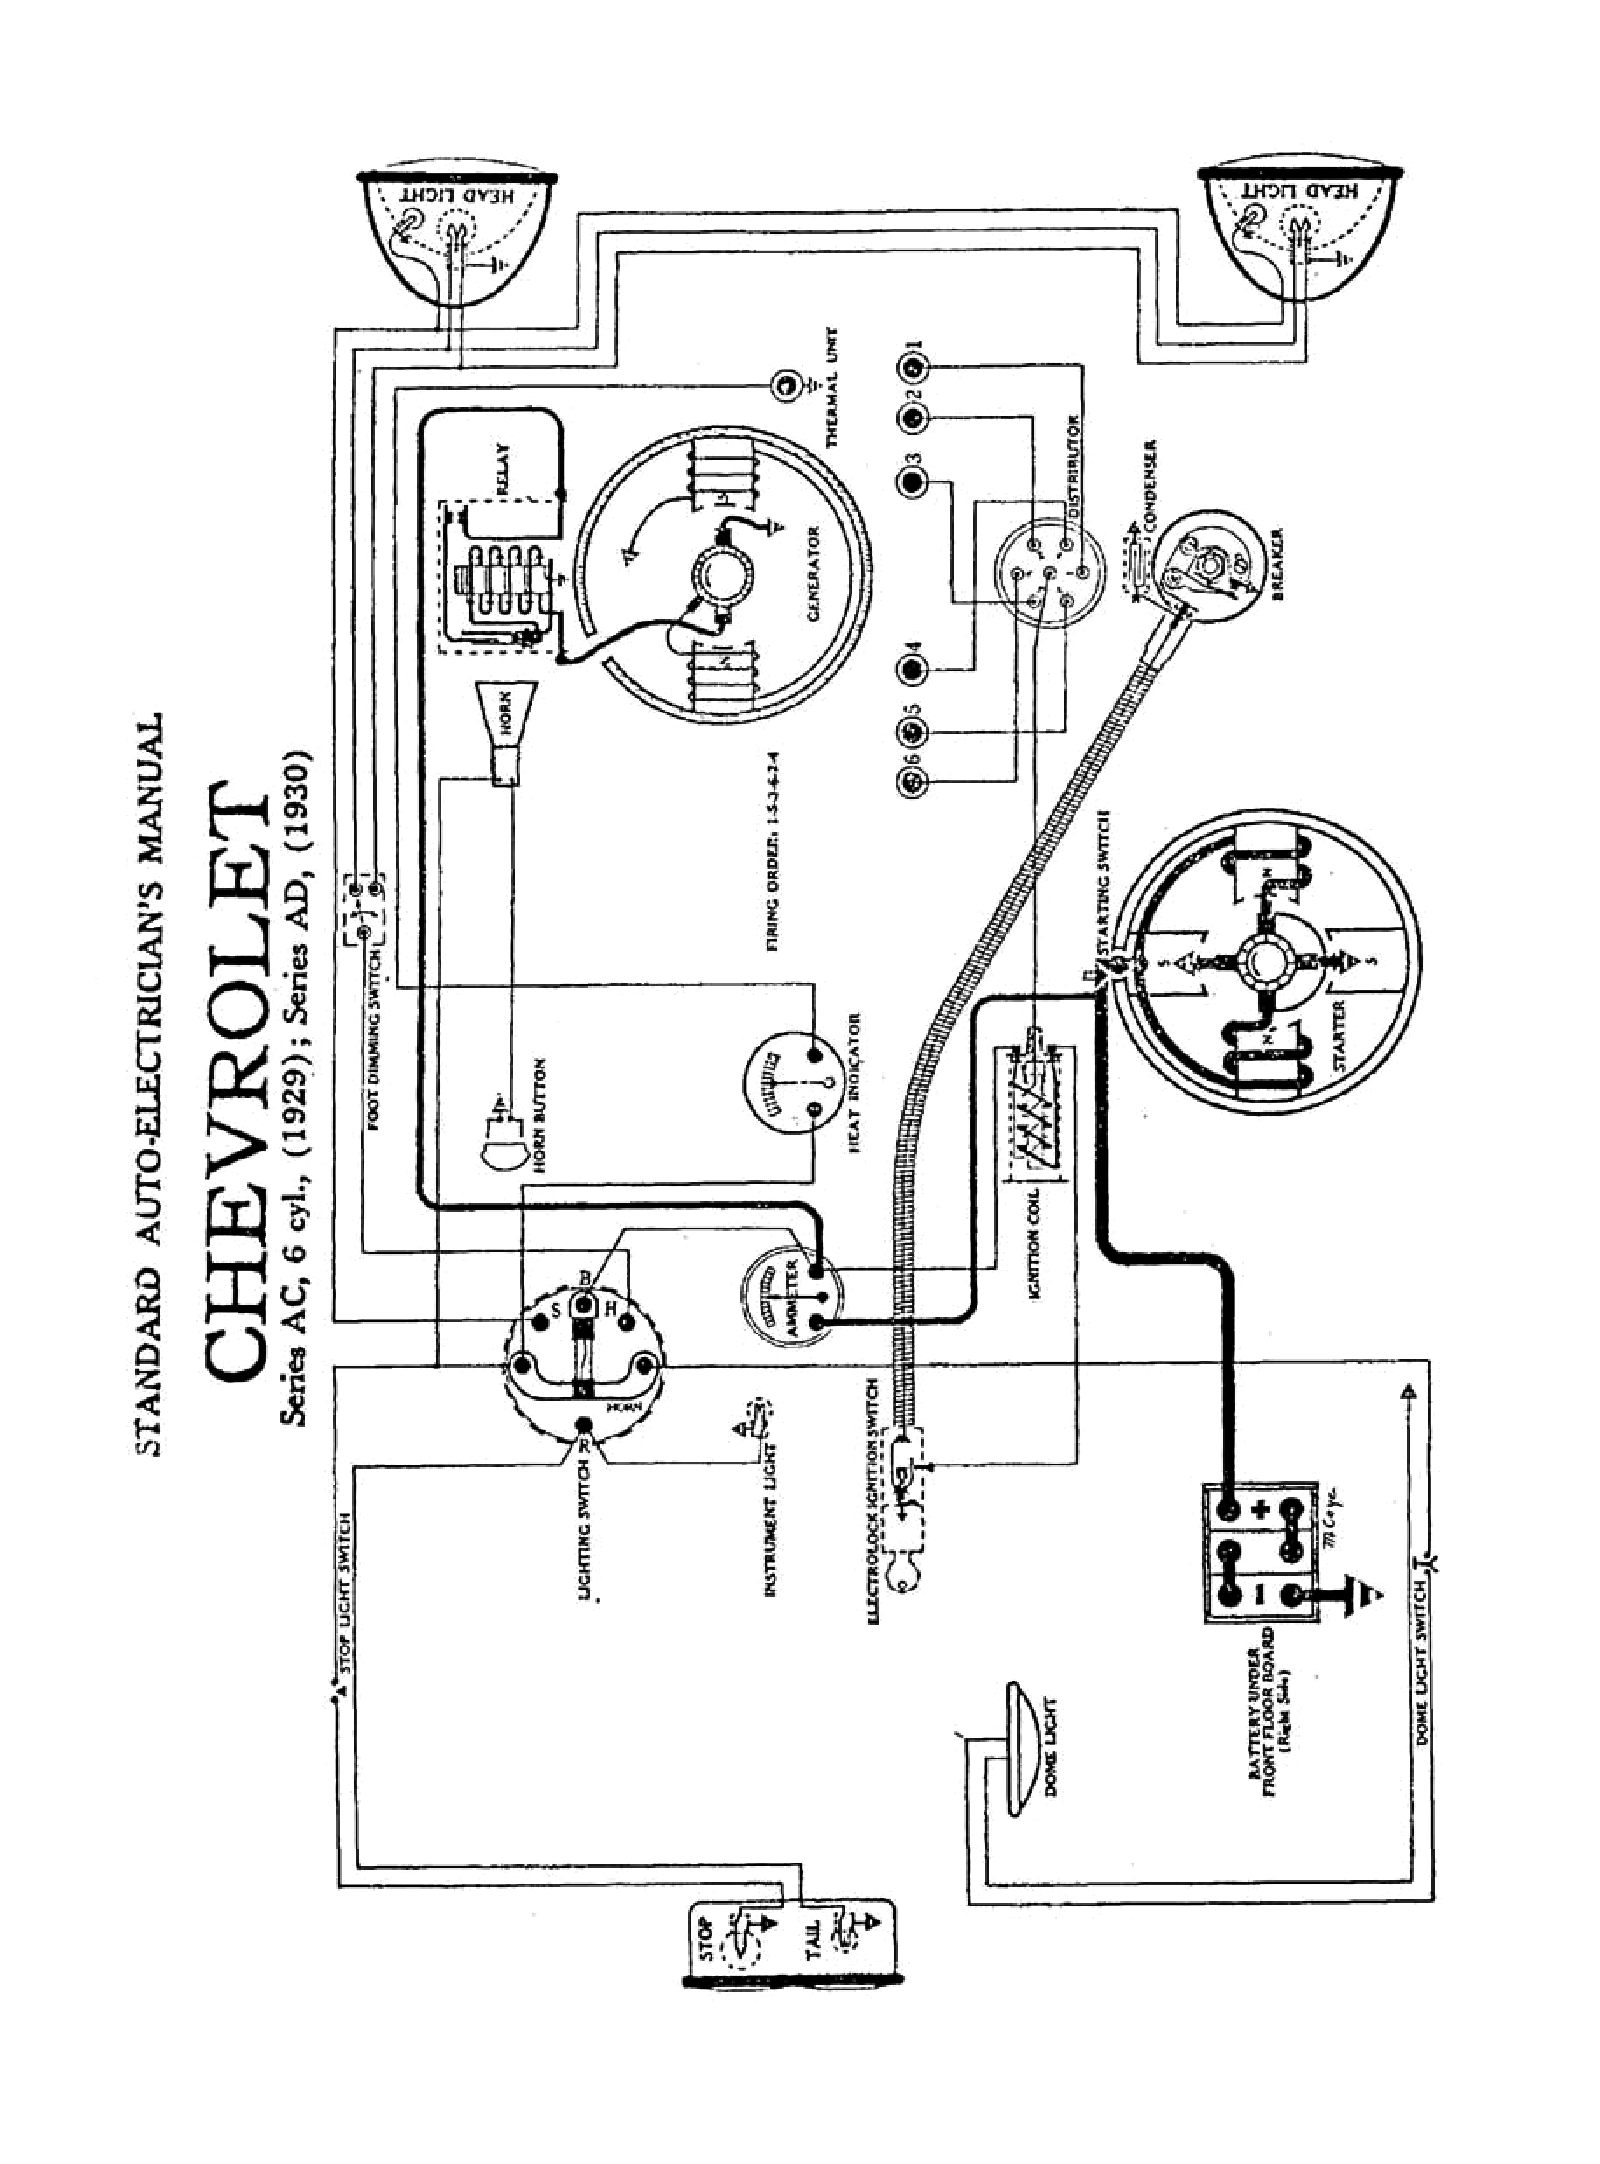 2930wiring chevy wiring diagrams Ford Schematics at bayanpartner.co